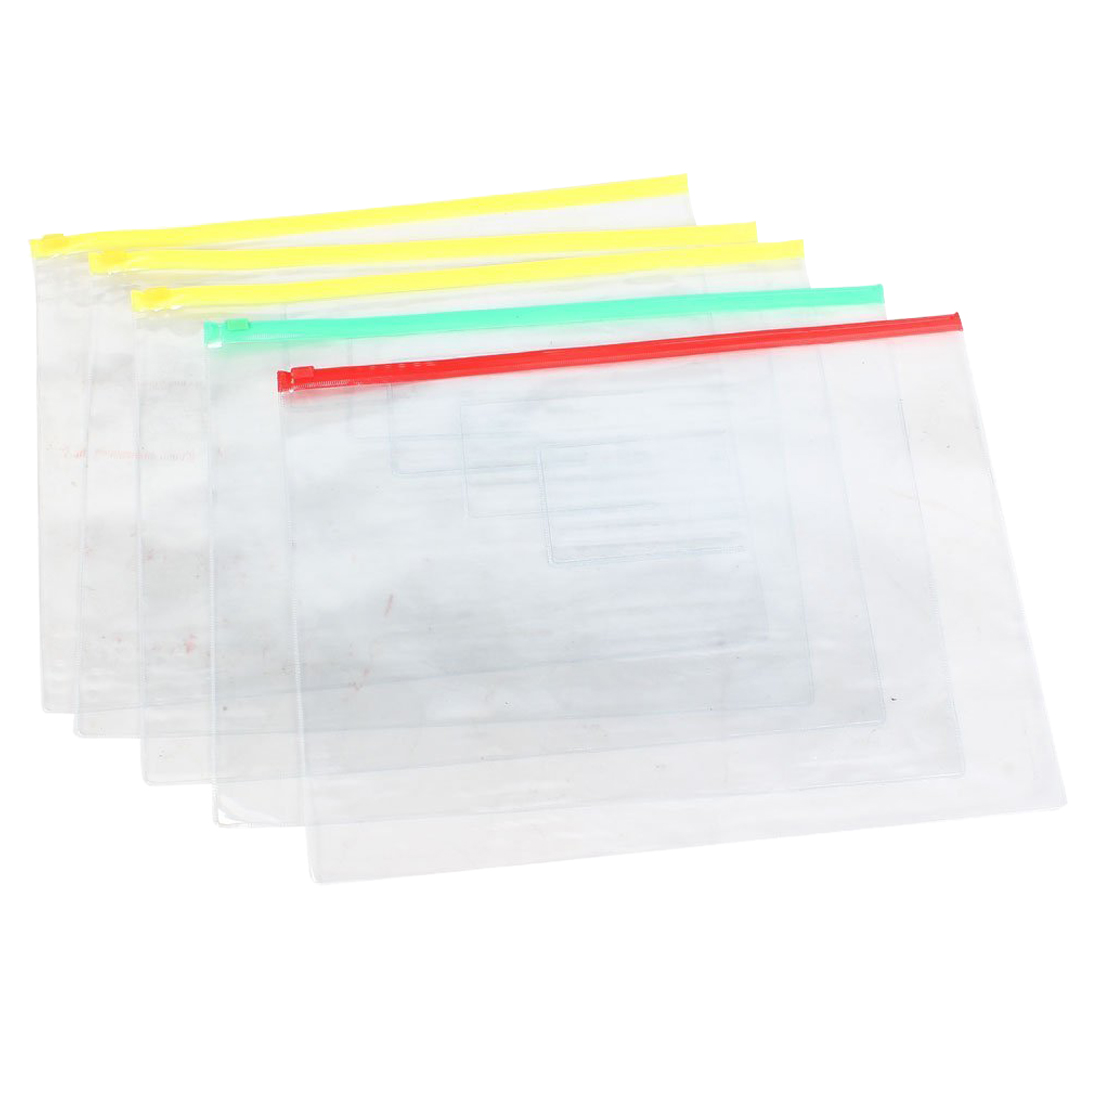 SOSW-5 Pcs Clear Plastic Water Proof Pen A4 File Paper Ziplock Bags Folders